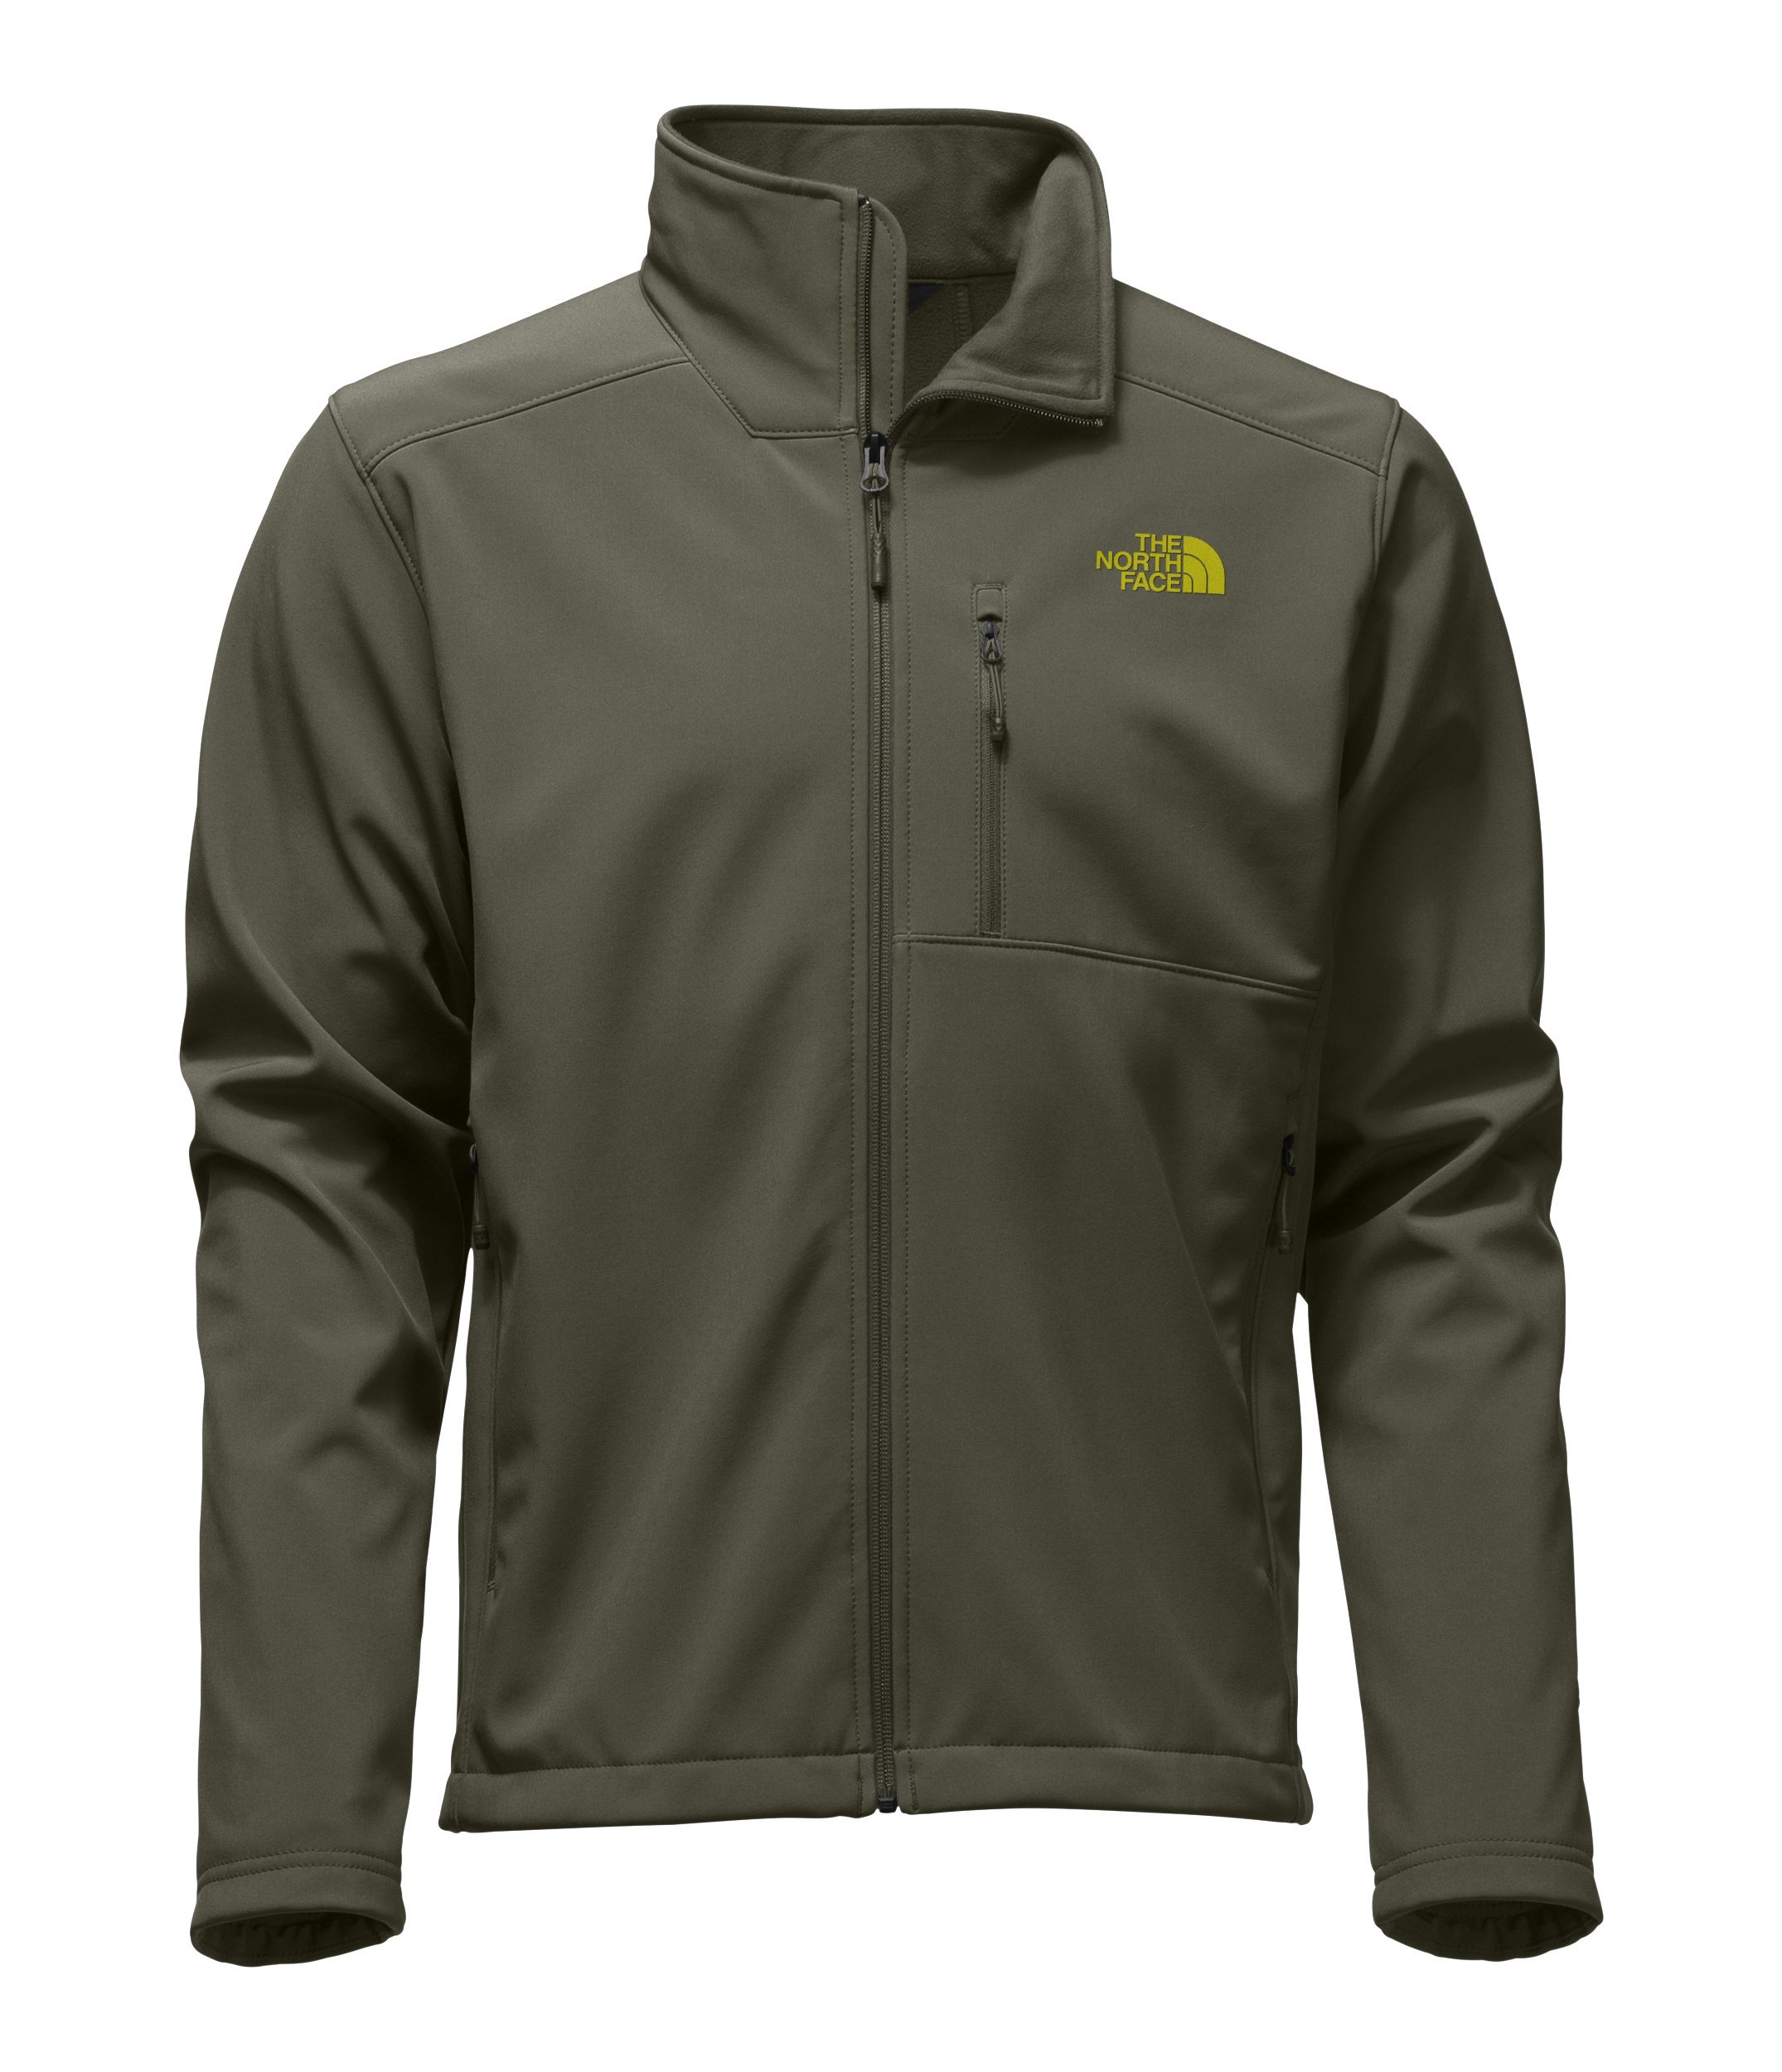 The North Face Men's Apex Bionic 2 Jacket - Grape Leaf - XL by The North Face